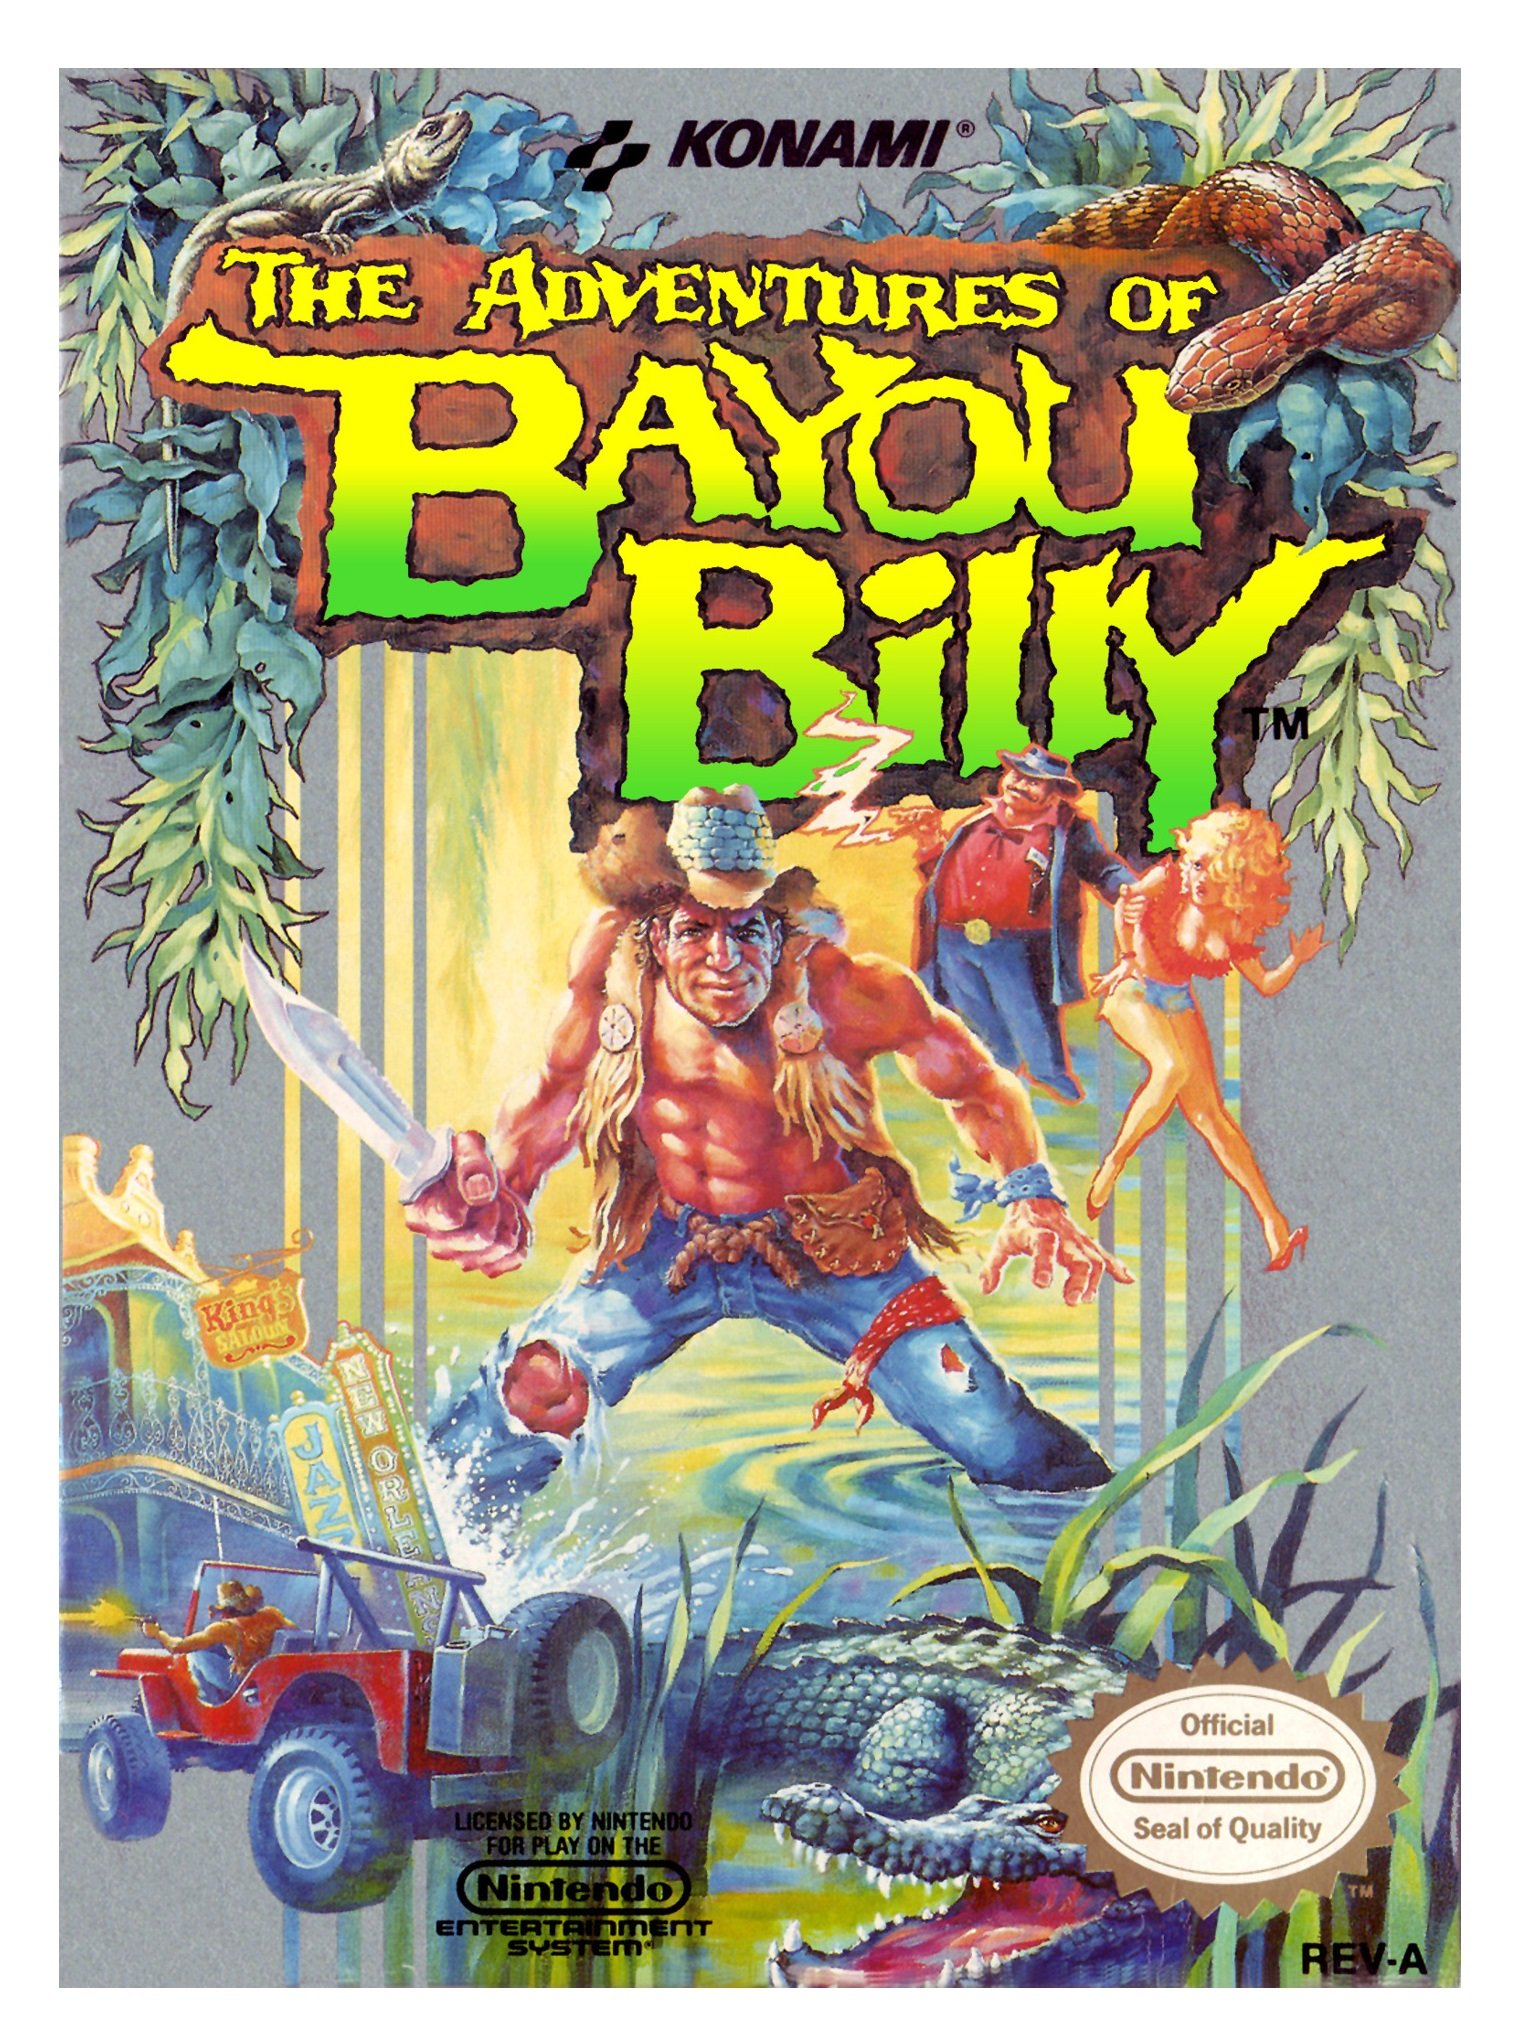 Amazon.com: The Adventures of Bayou Billy: Video Games